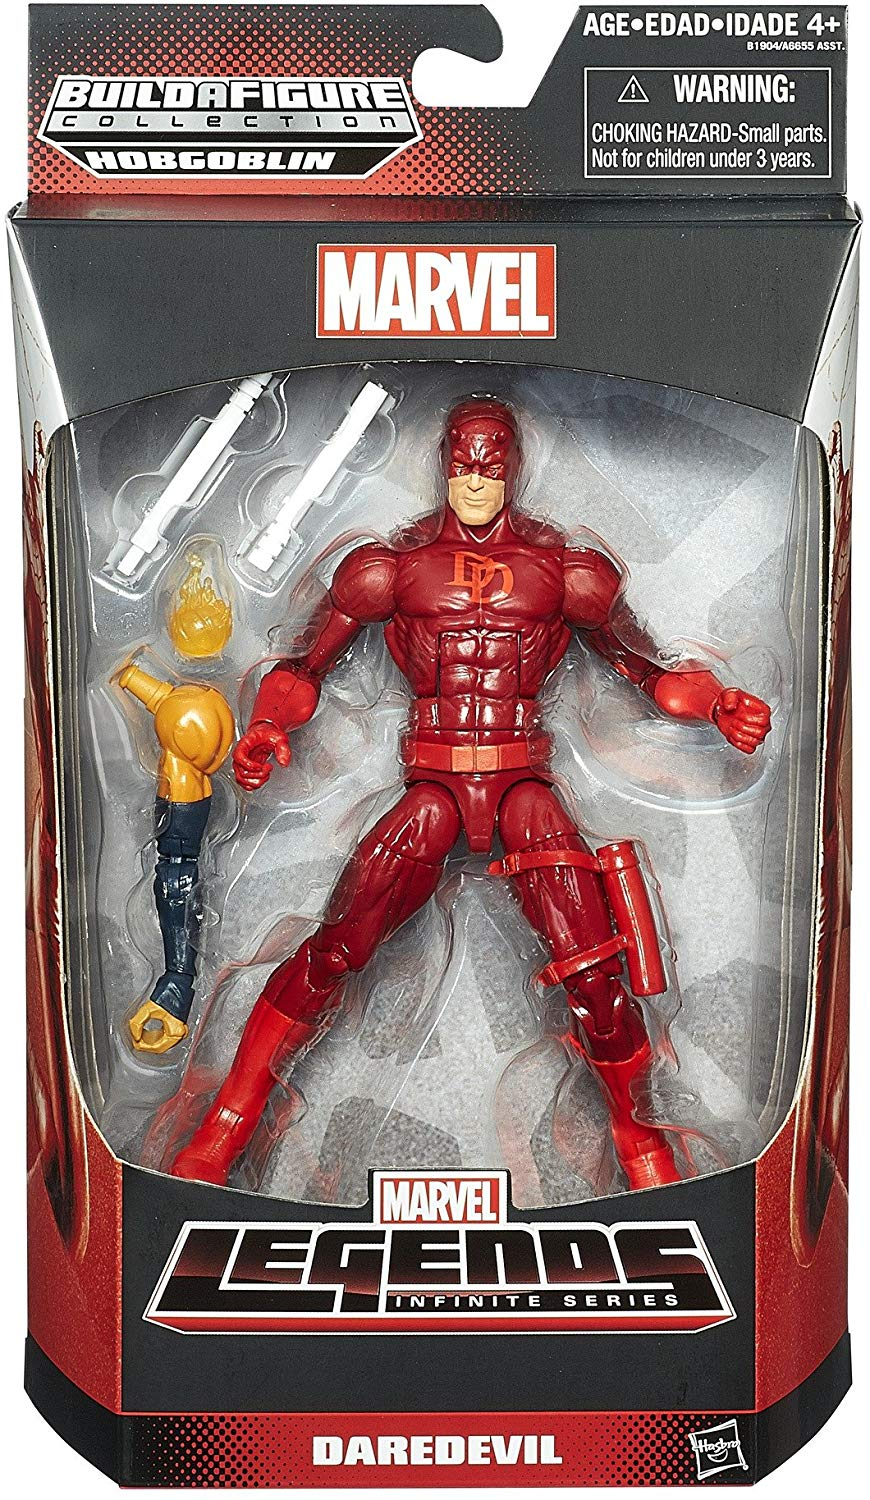 2015 Marvel Legends Infinite Series DAREDEVIL HOBGOBLIN Series Sealed NEW